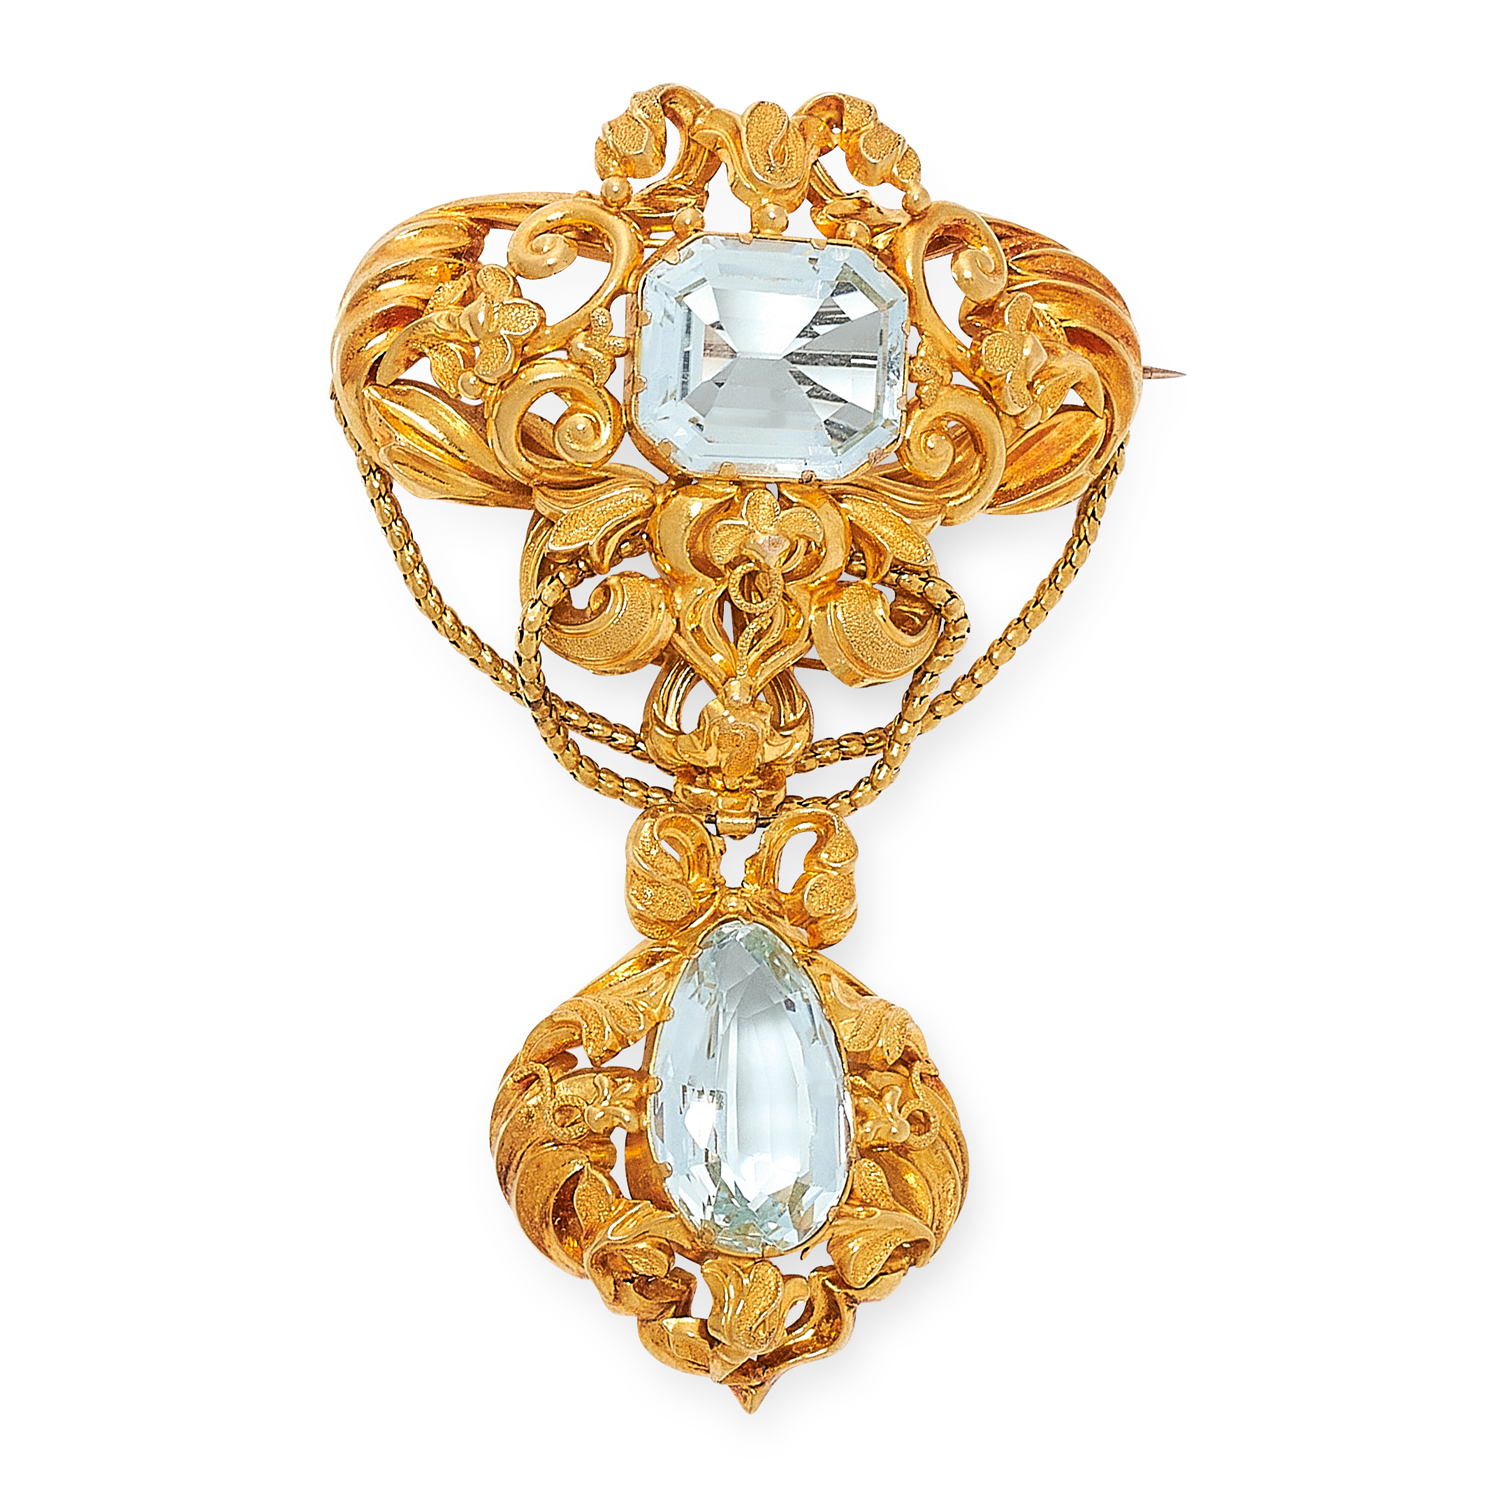 AN ANTIQUE AQUAMARINE BROOCH, 19TH CENTURY in yellow gold, the articulated body set with pear and